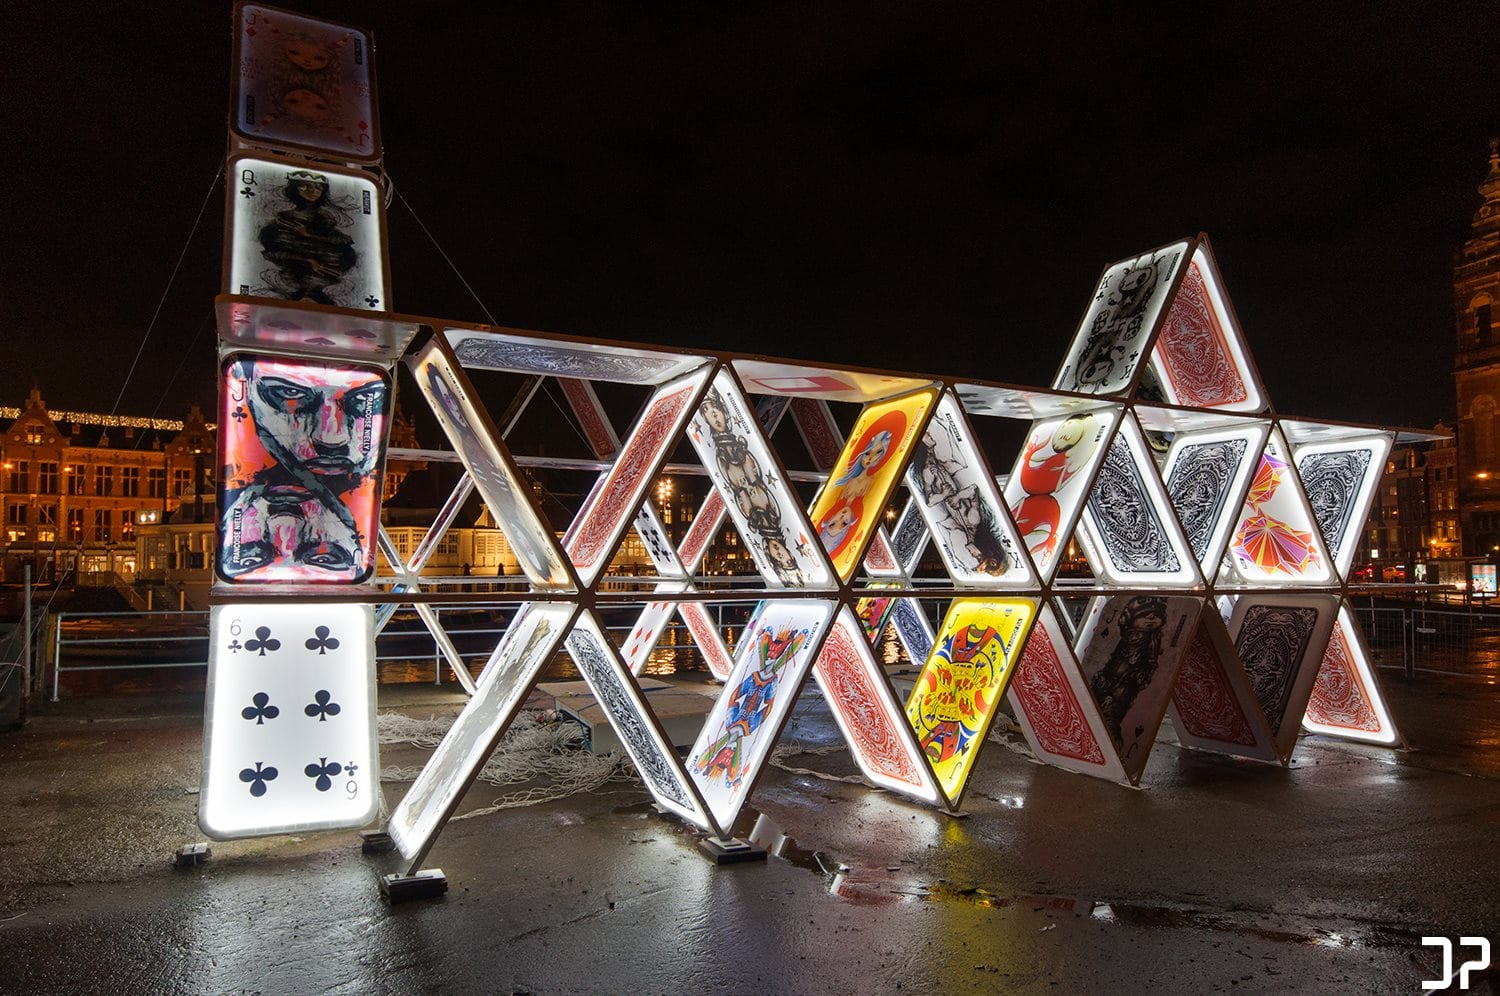 House of cards - Amsterdam Light Festival 2014